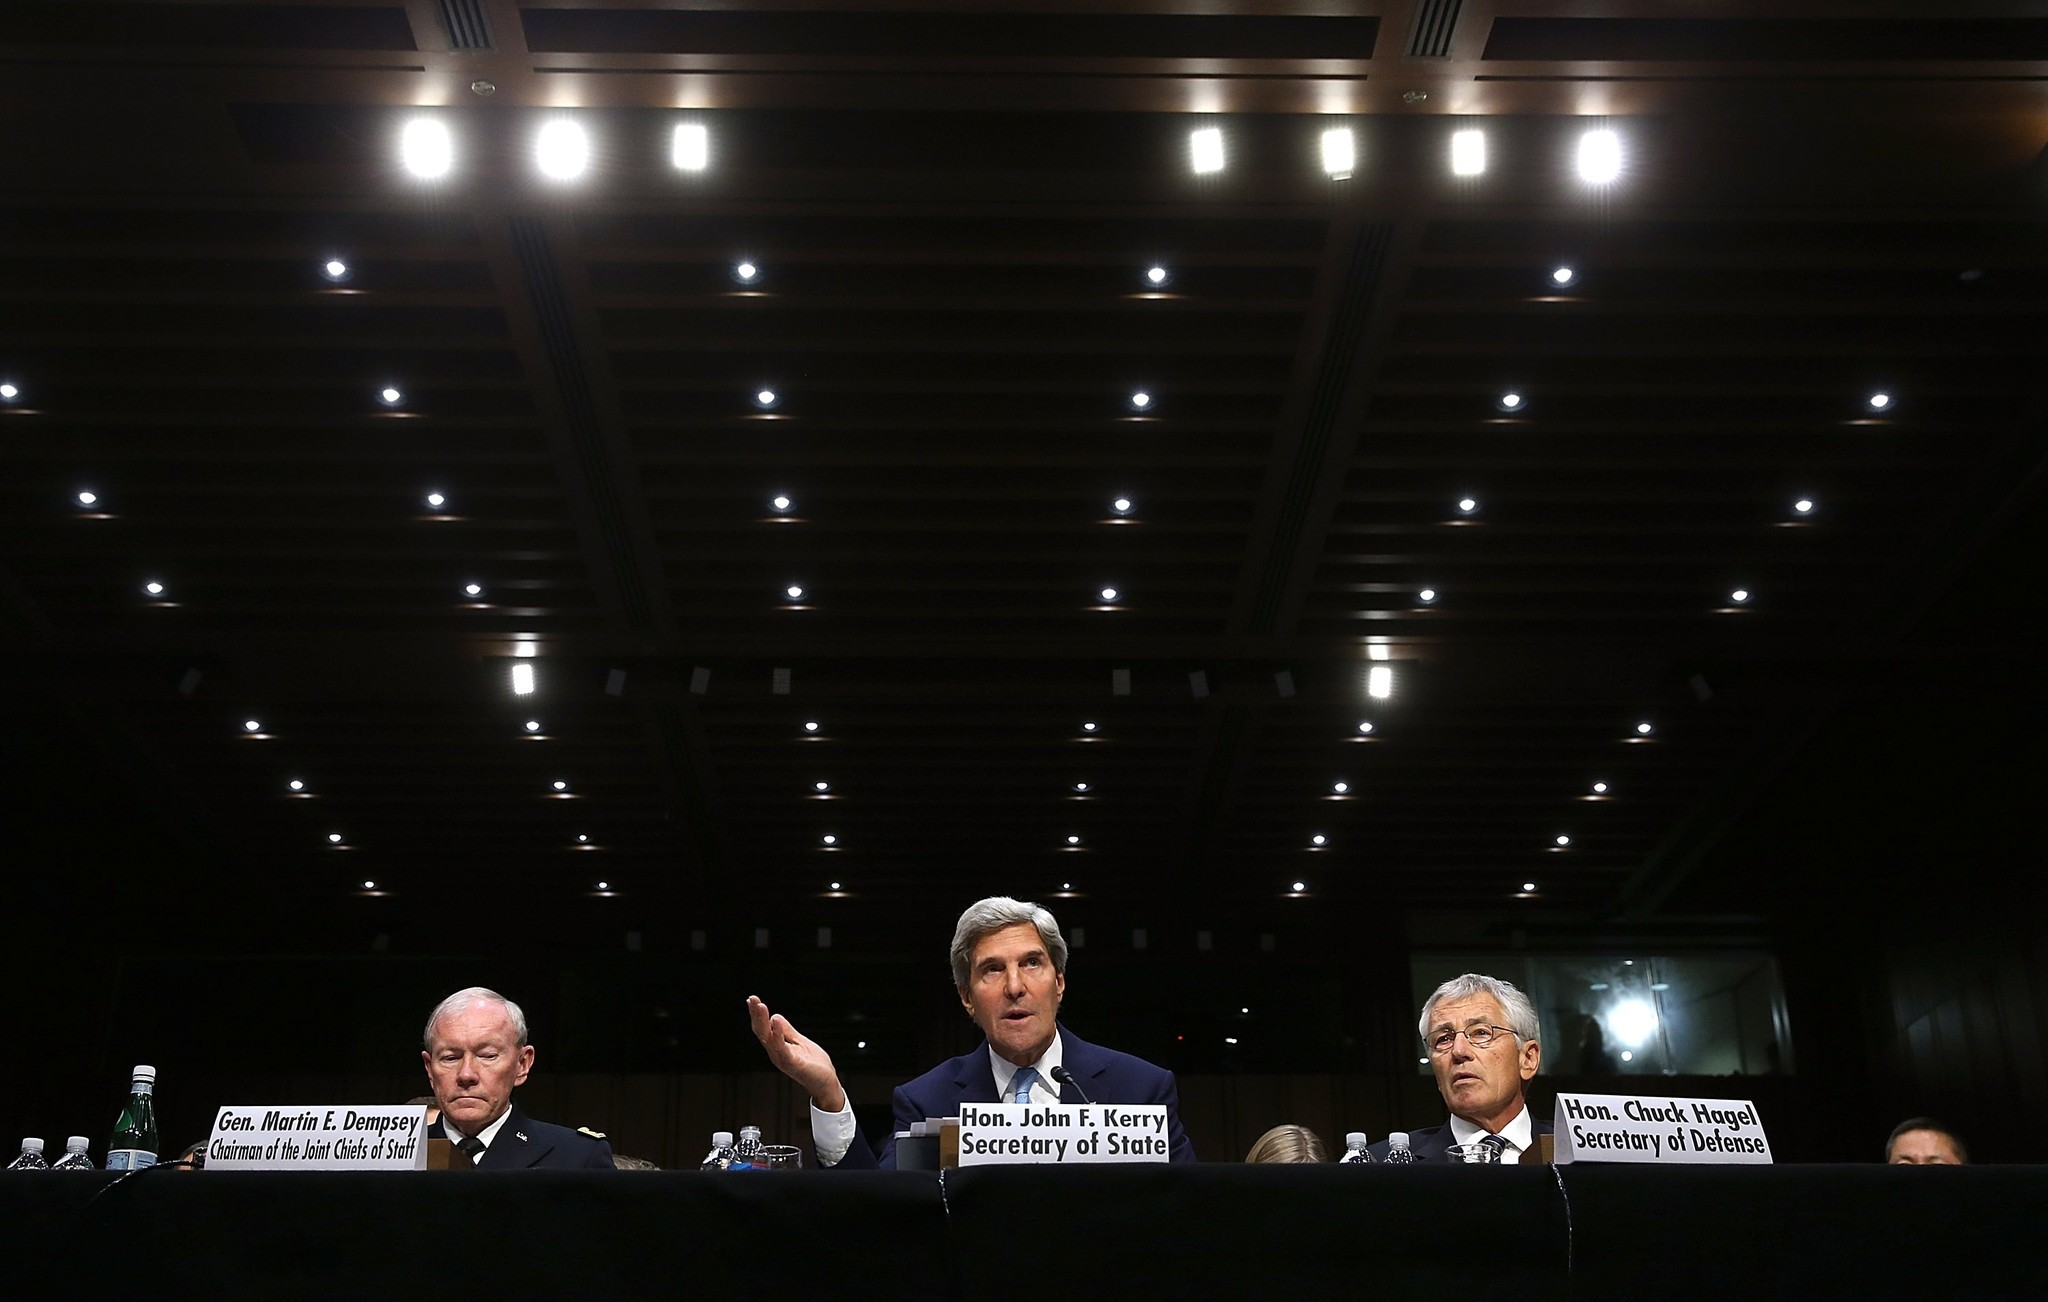 Debate over  strikes on Syria - Dempsey, Kerry and Hagel